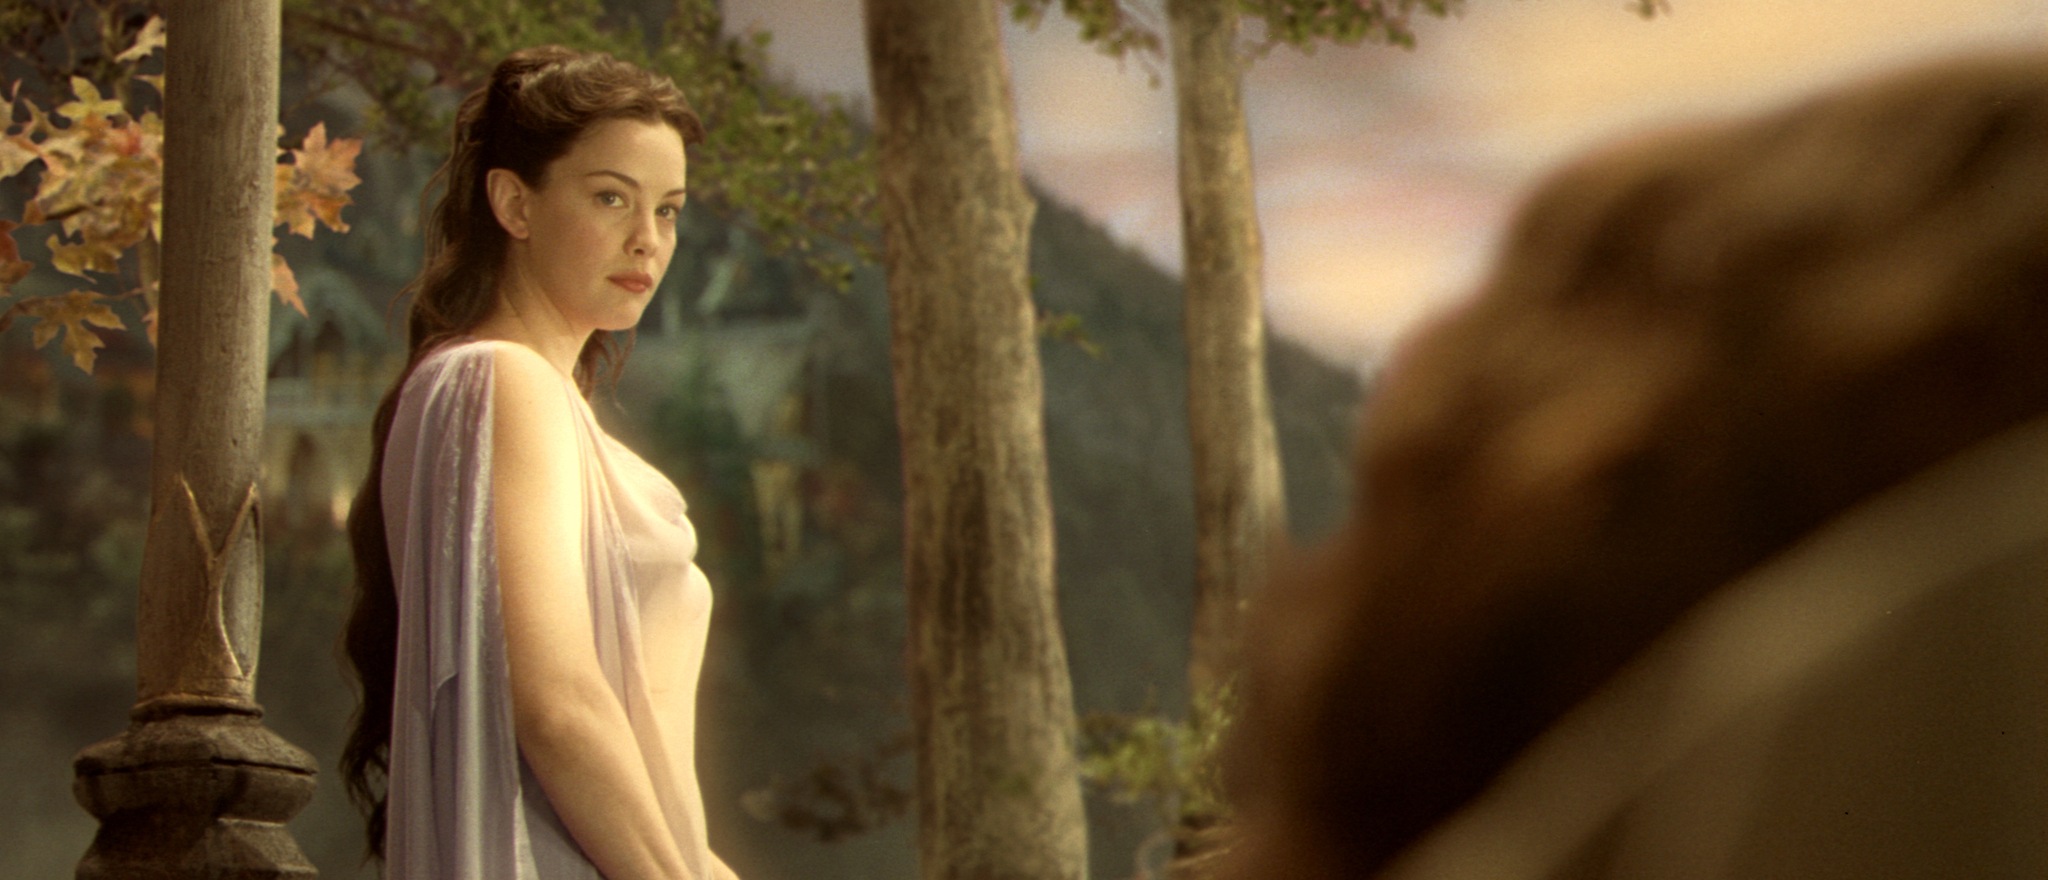 Liv Tyler in The Lord of the Rings: The Two Towers (2002)